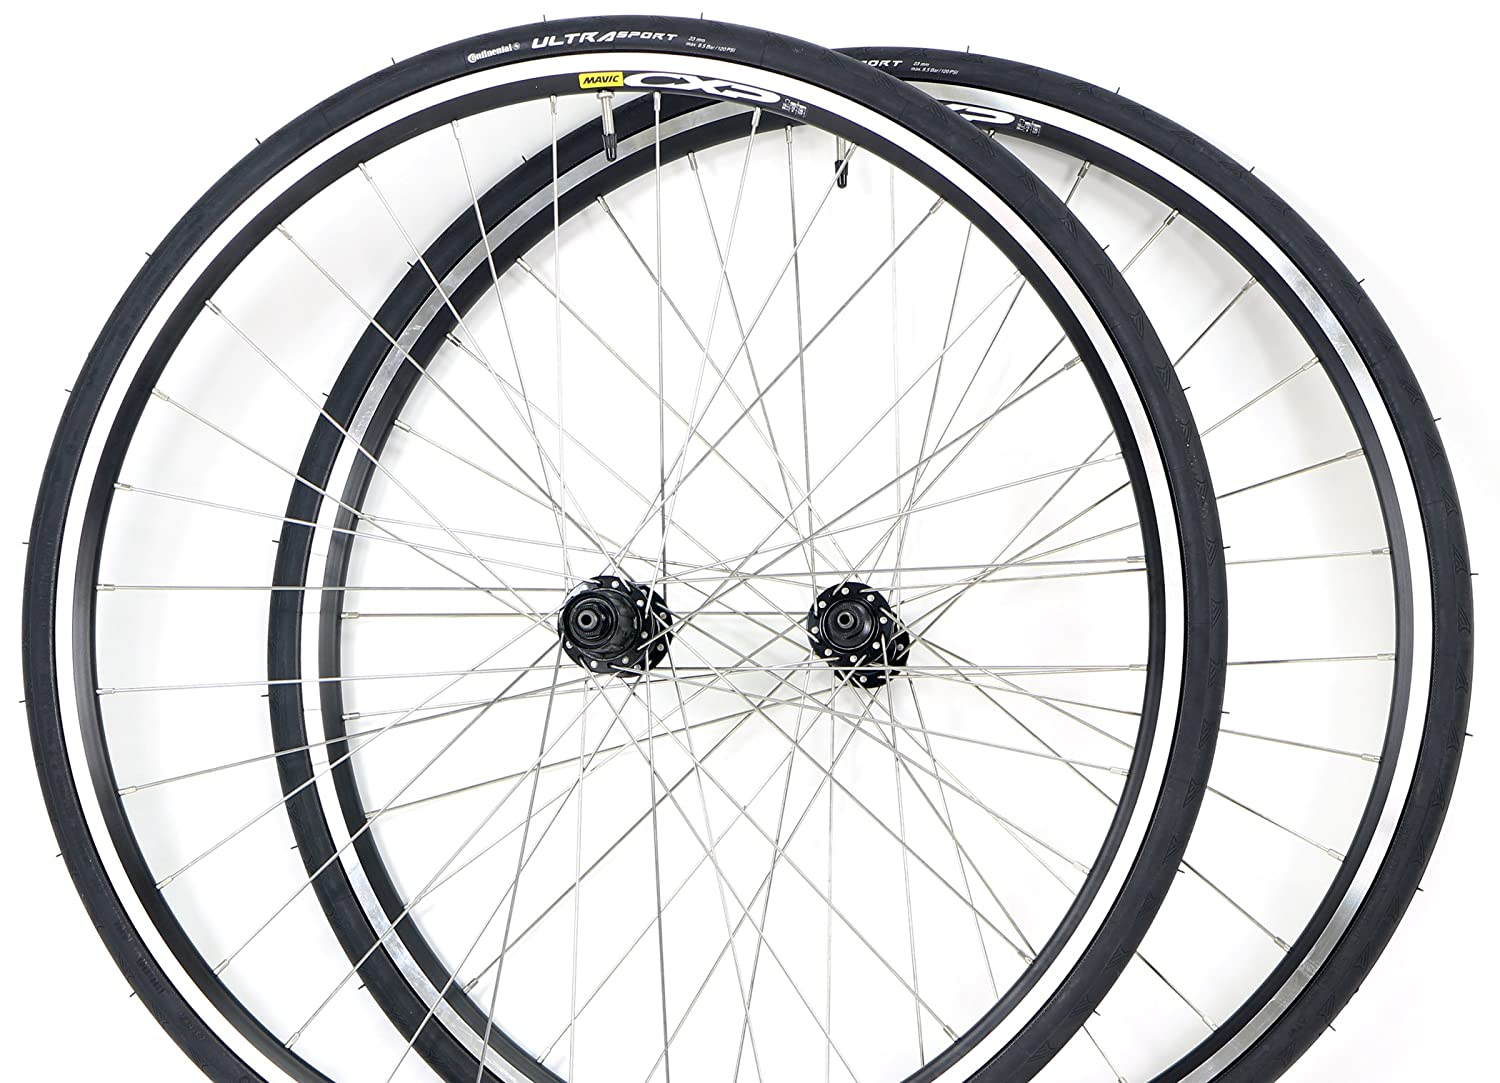 Top 20 Best Bike Wheels Reviews 2018-2019 - cover